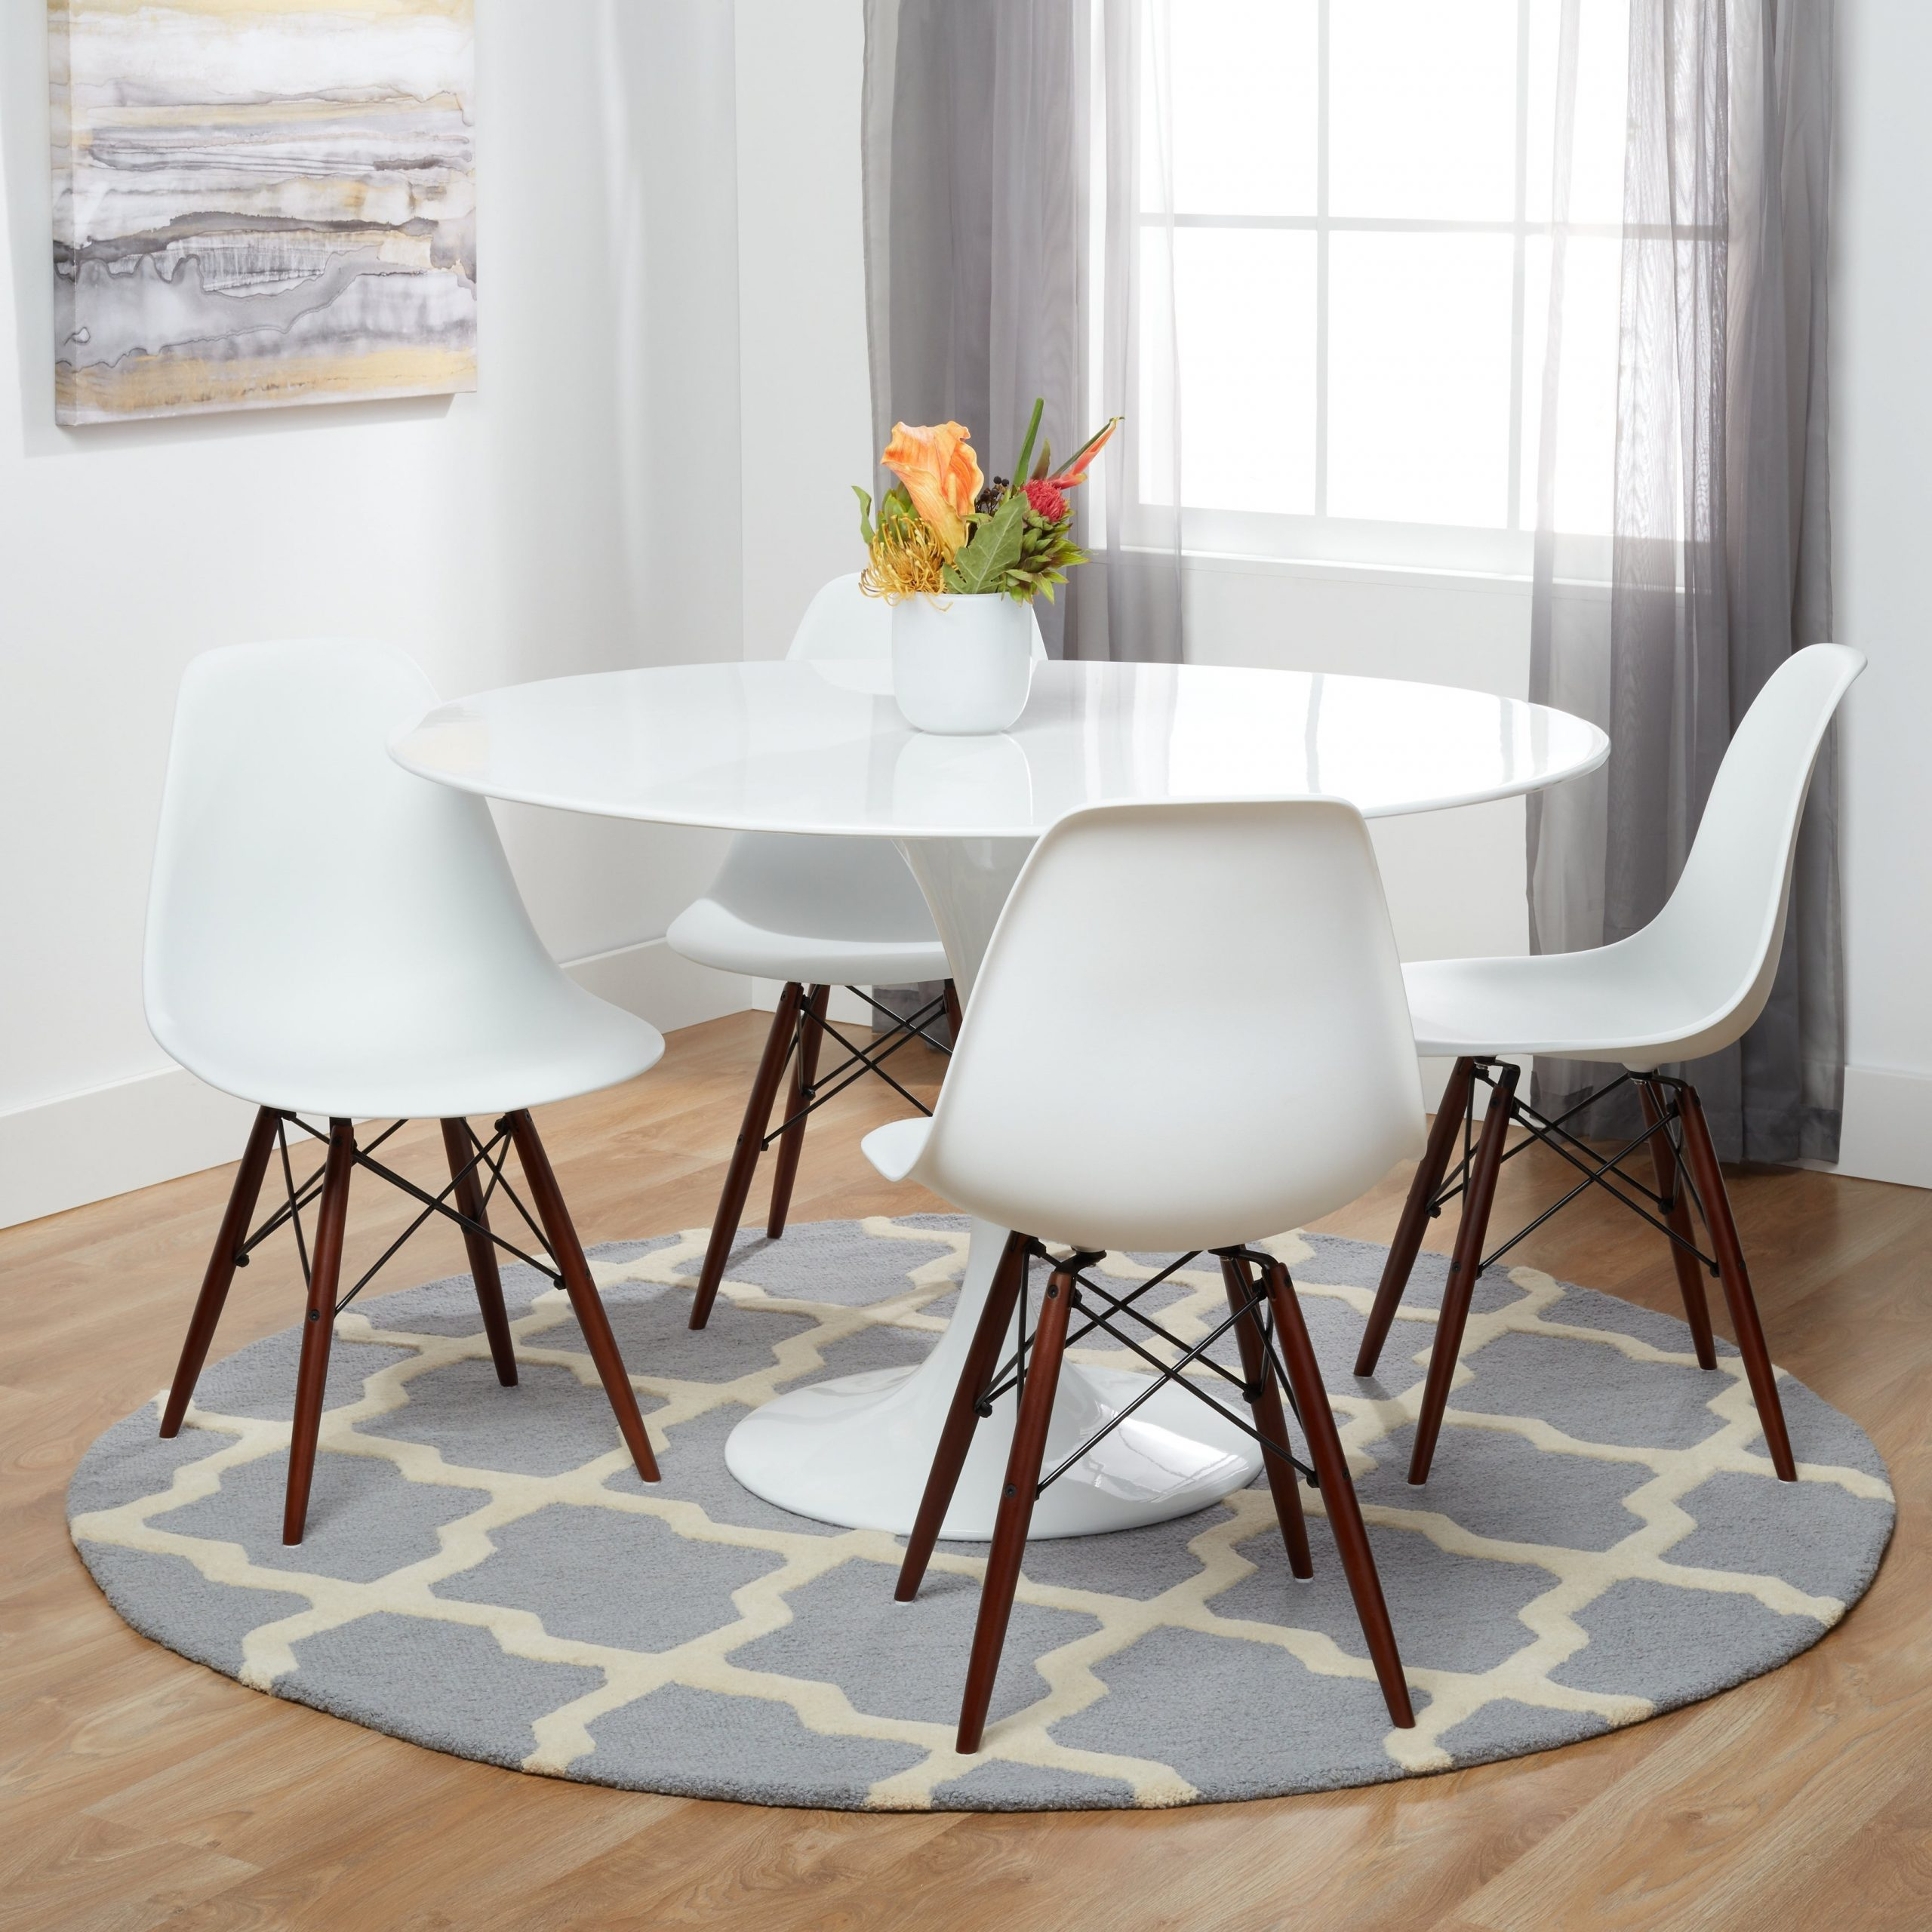 Eames Style Dining Tables With Wooden Legs With Most Current Take Me Home Furniture Eames Style Side Chair With Walnut (View 4 of 16)